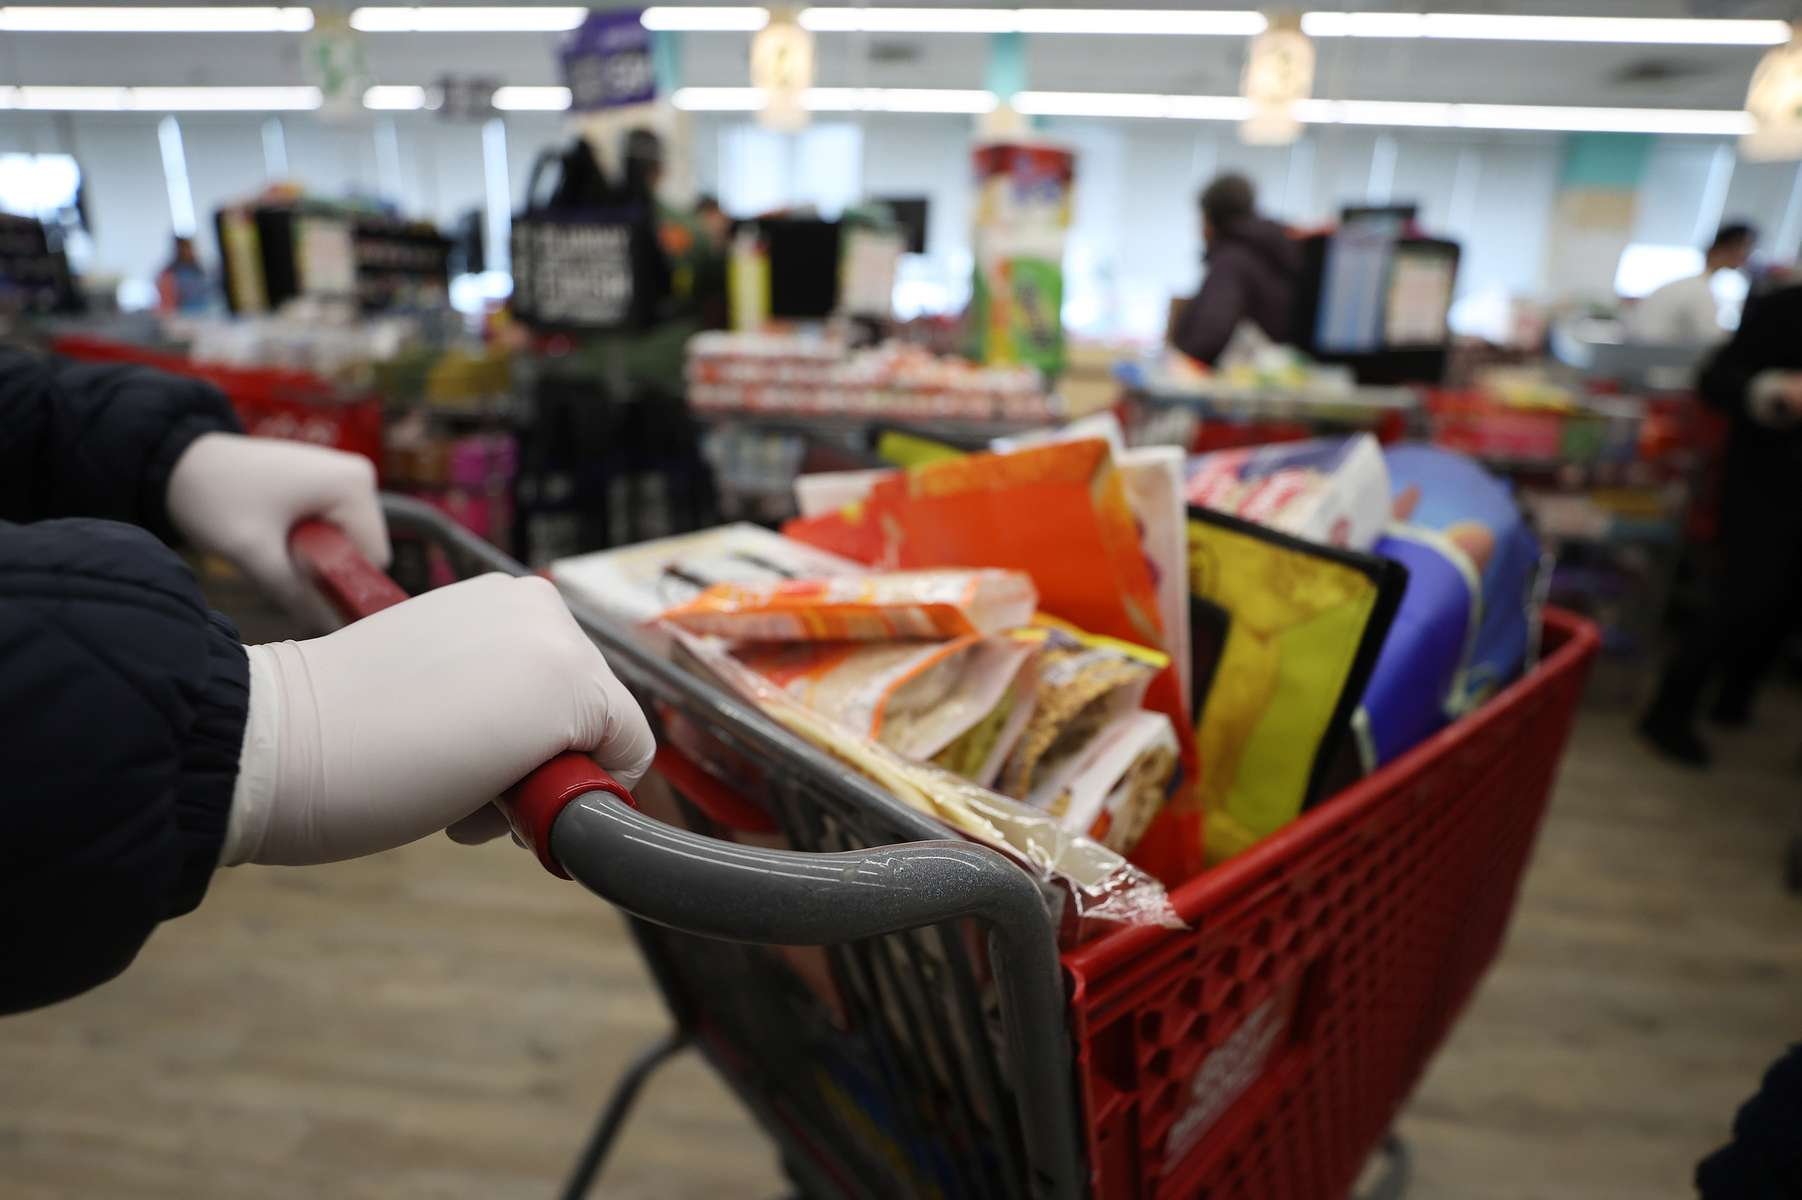 People wear latex gloves while food shopping.  As the coronavirus continues to spread across the United States, stores like Best Market had problems keeping up with the high demand for paper goods leading to empty shelves on March 17, 2020 in Merrick, New York. The World Health Organization declared coronavirus (COVID-19) a global pandemic on March 11th.